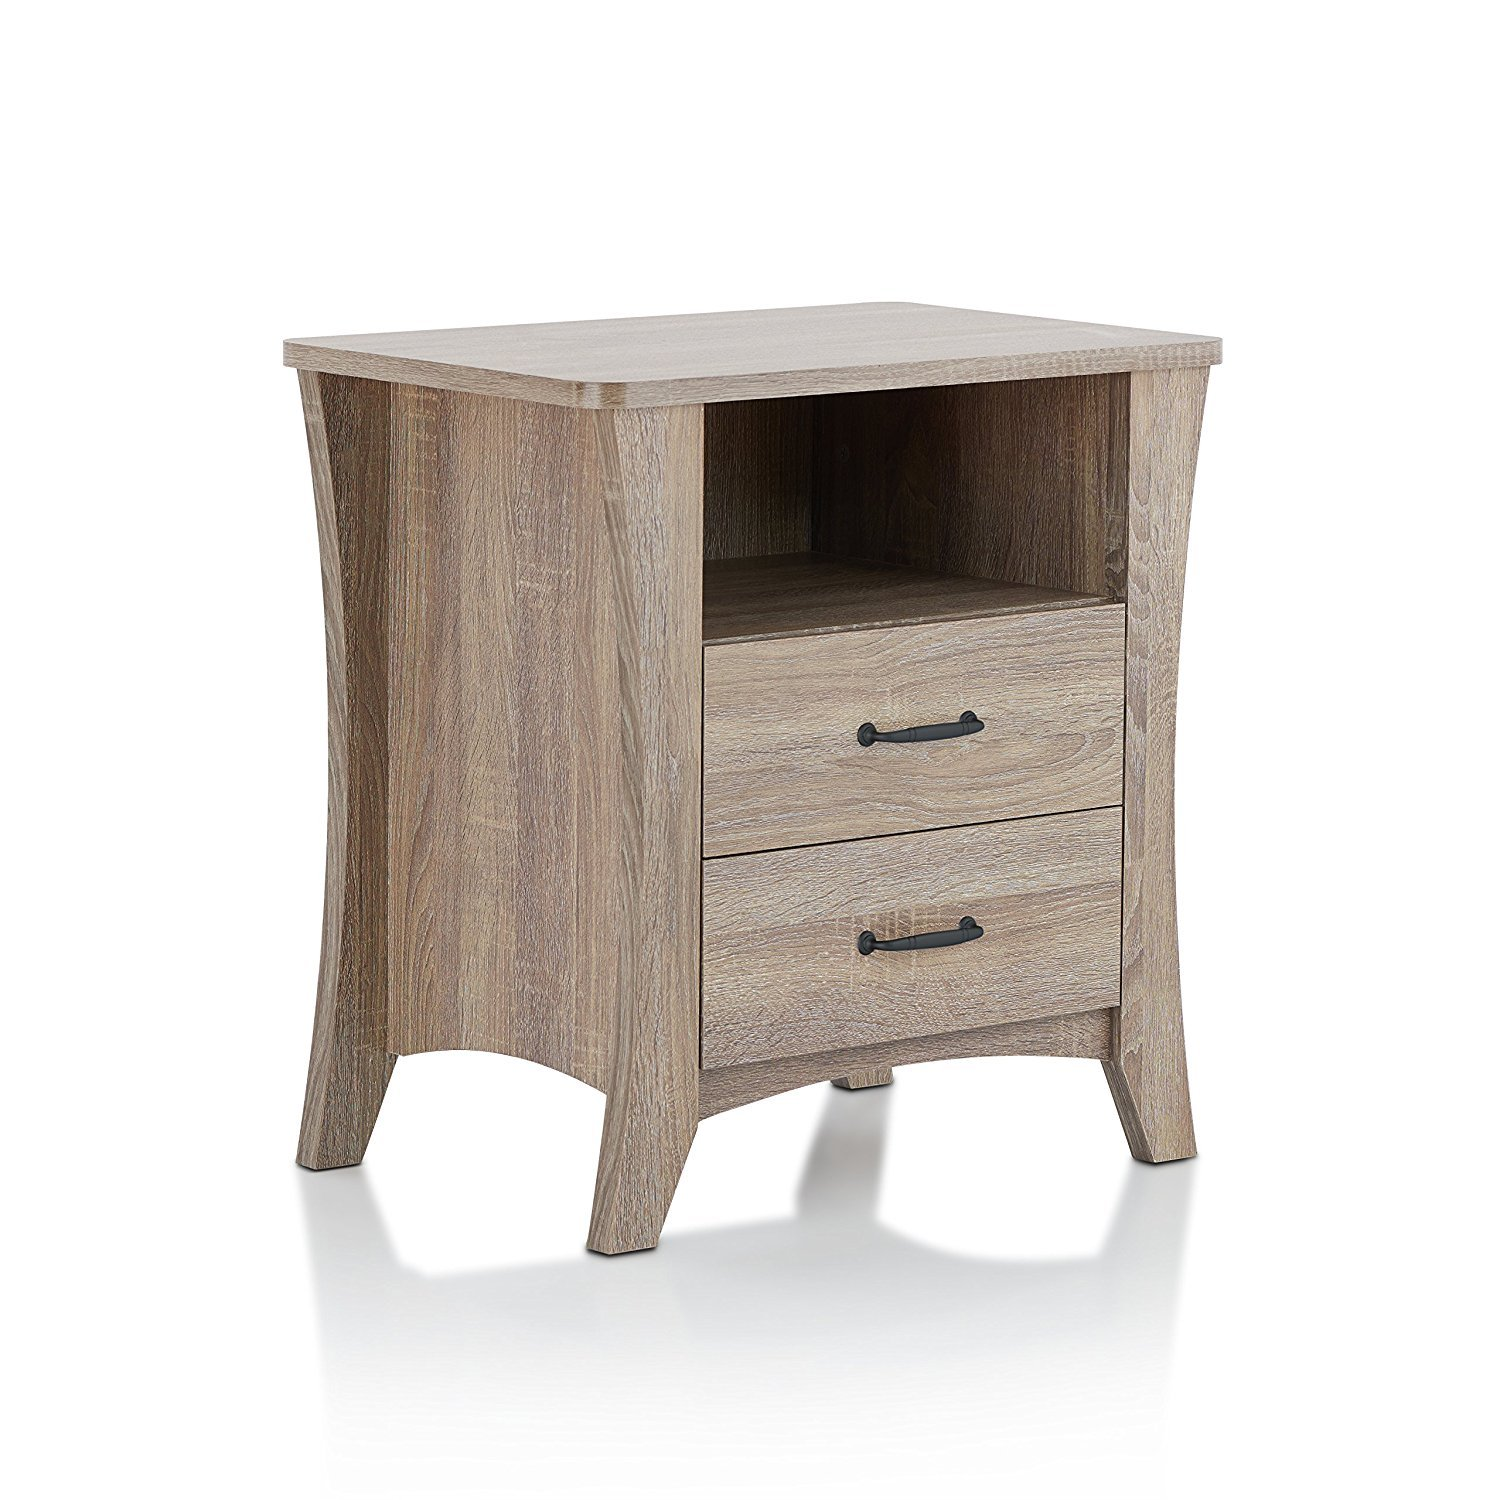 Major-Q Contemporary Rustic 2 Drawer Nightstand Natural Finish (MQ-97262)